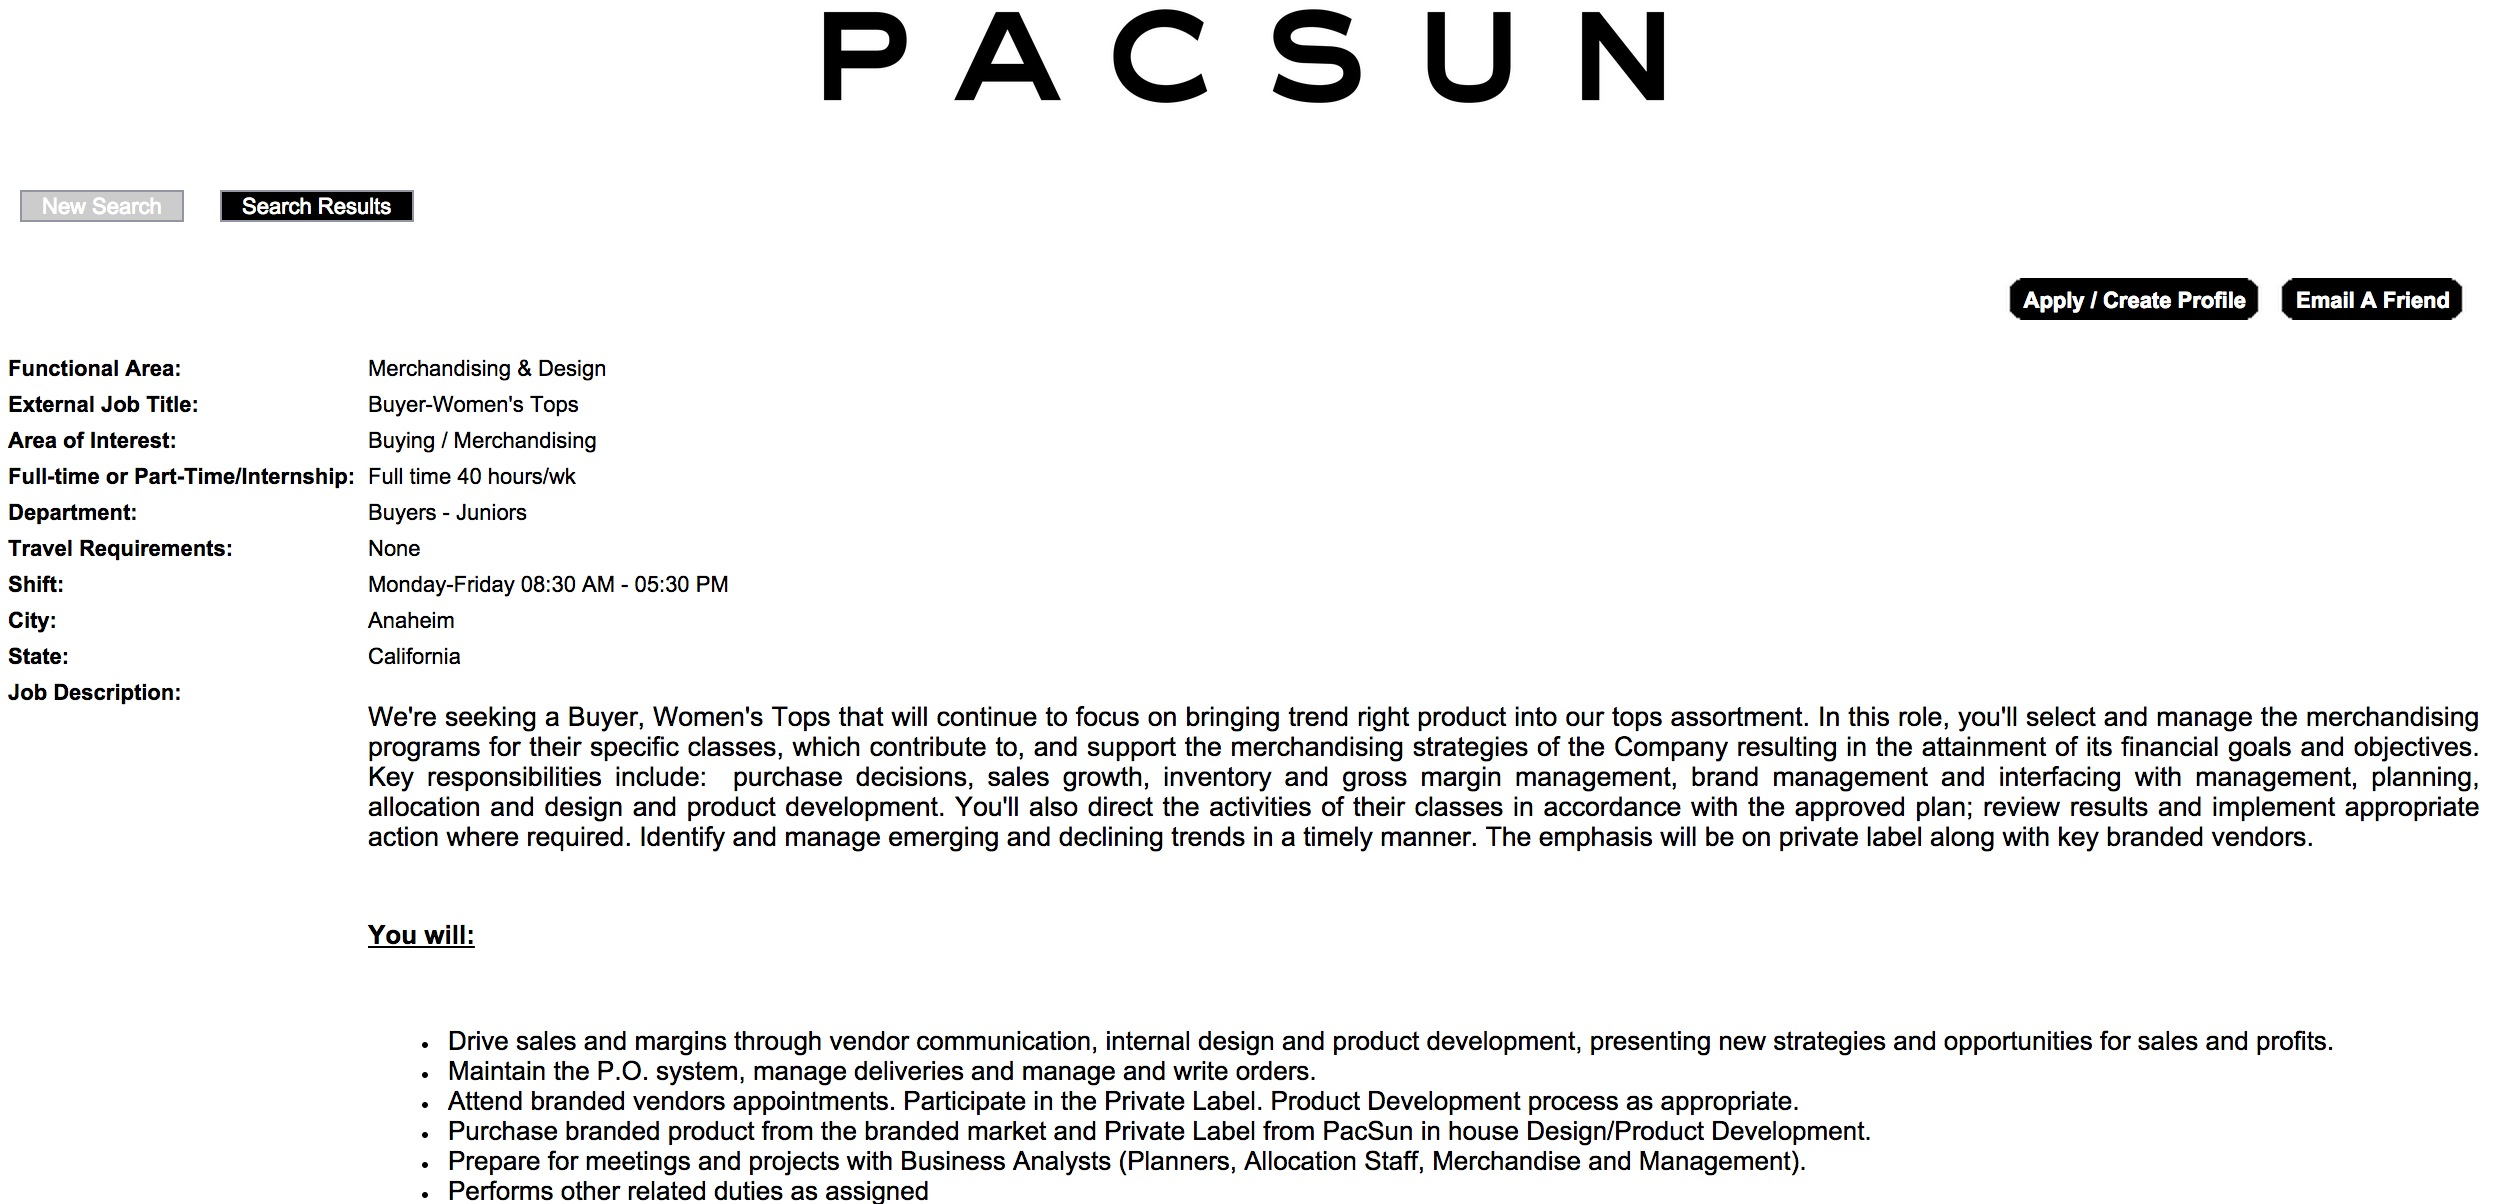 download pacsun job application form pdf template wikidownload